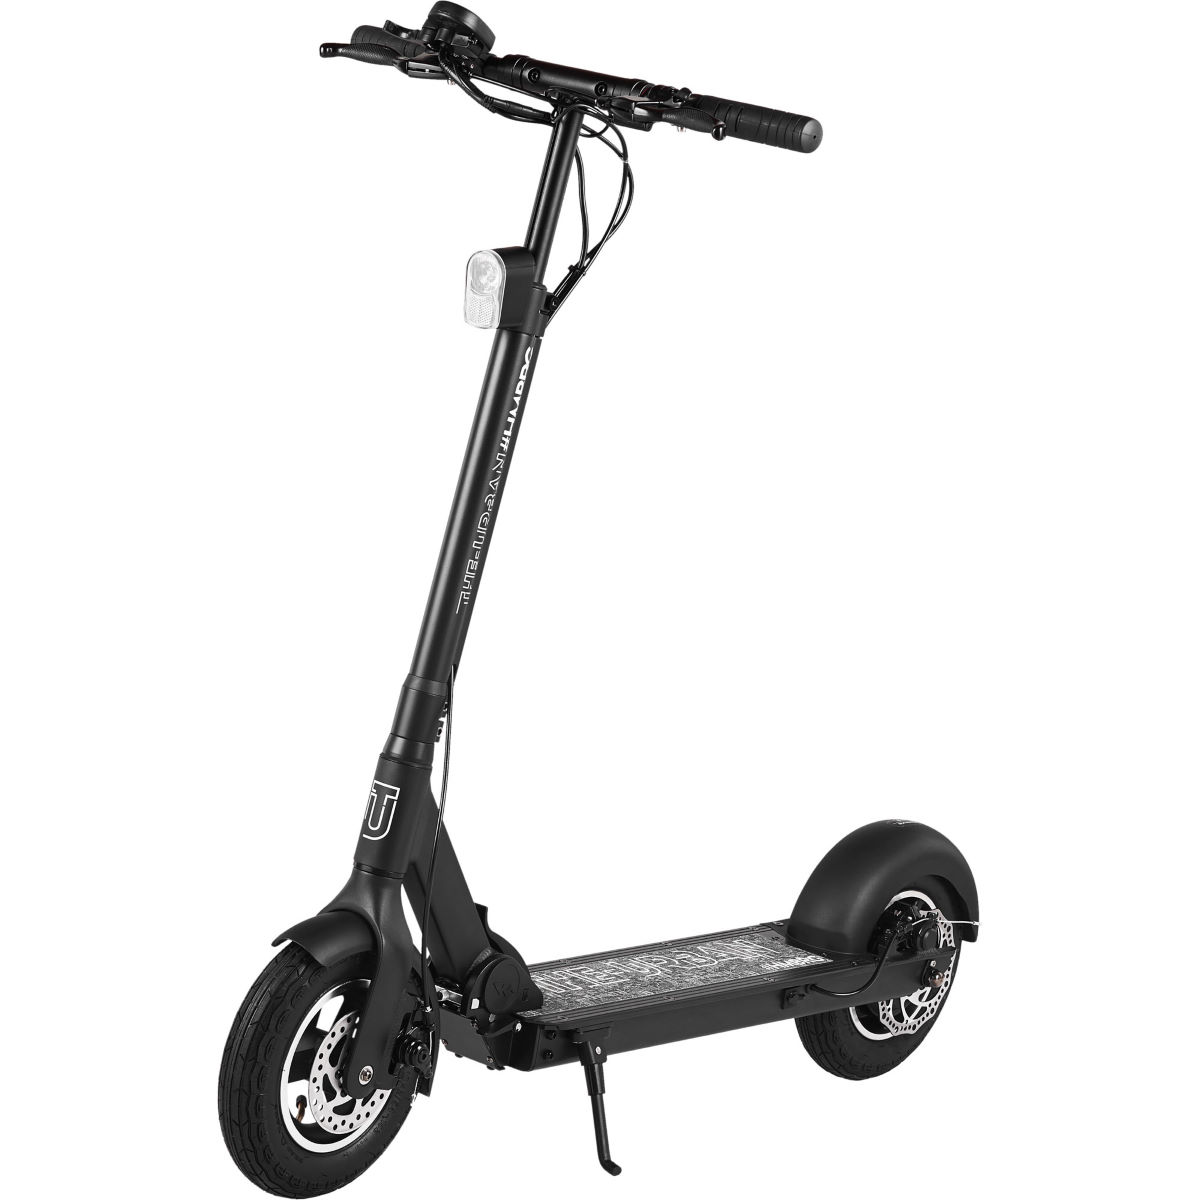 Walberg Walberg Urban V2 Electric Scooter   Electric Scooters